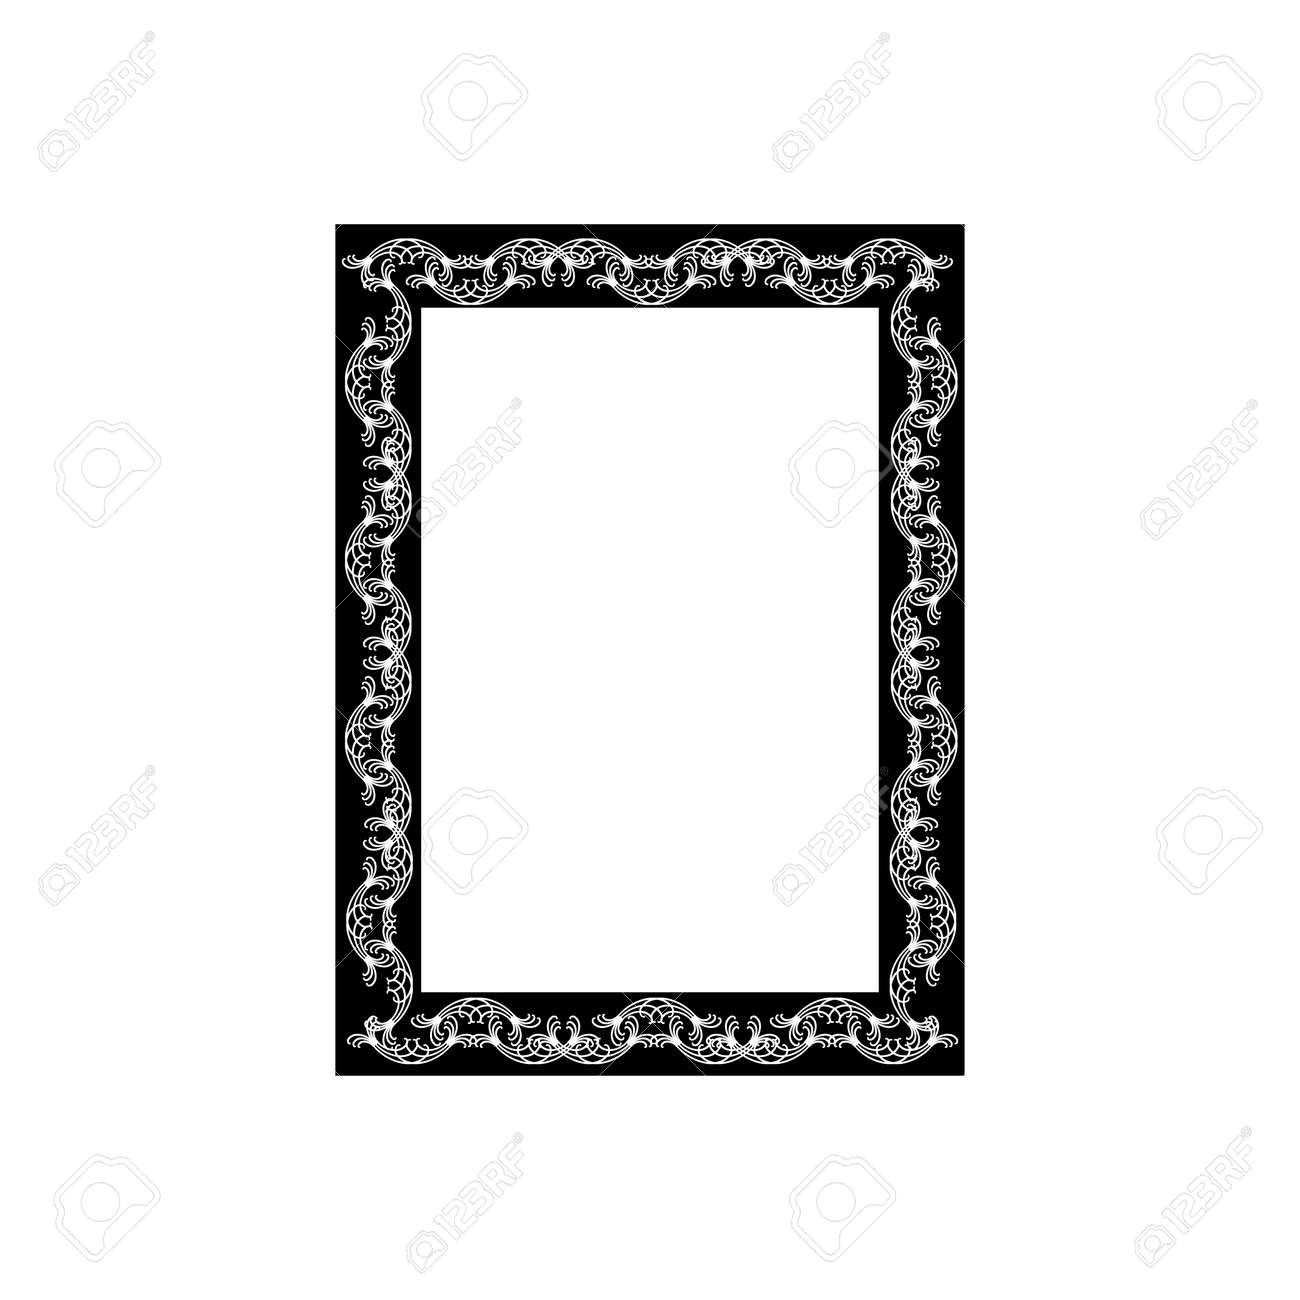 Frame with wavy line. Fashion graphic background design. Modern stylish abstract texture. Monochrome template for prints, textiles, wrapping, wallpaper, website. Design element. Vector illustration - 149912792